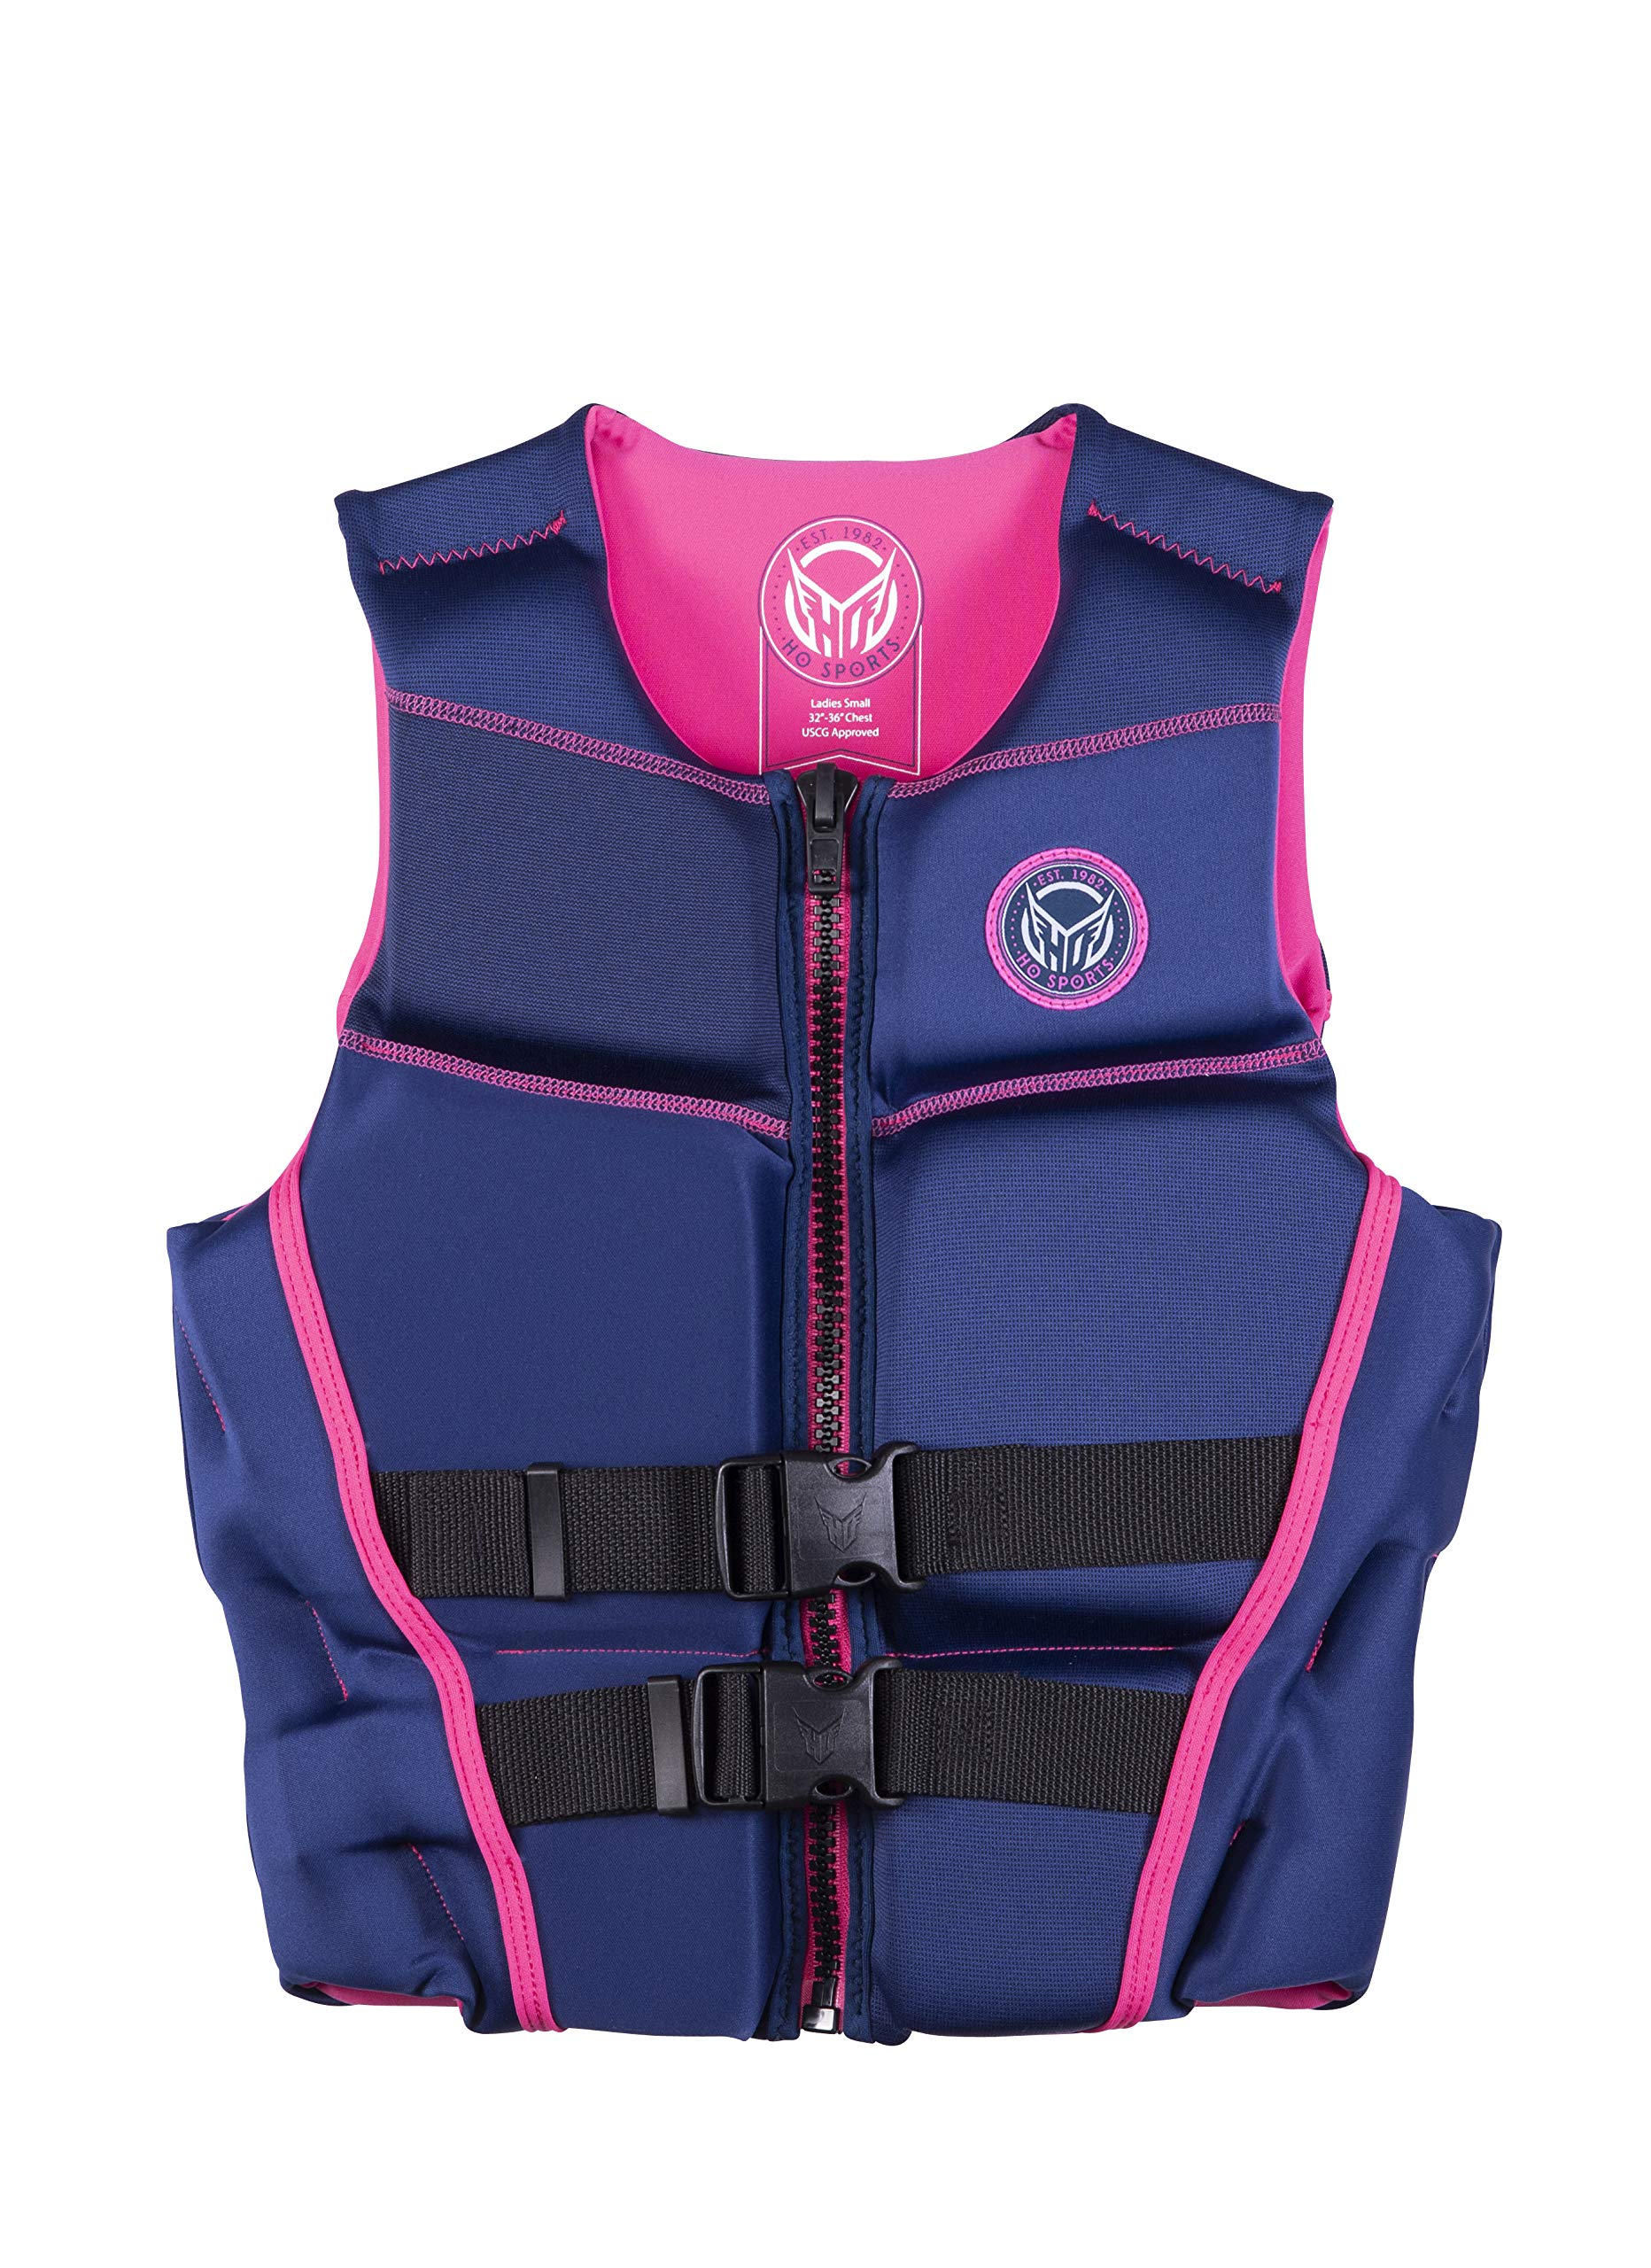 HO Sports 2019 Women System Ski Wakeboard Wakesurf Vest Jacket L by HO Sports